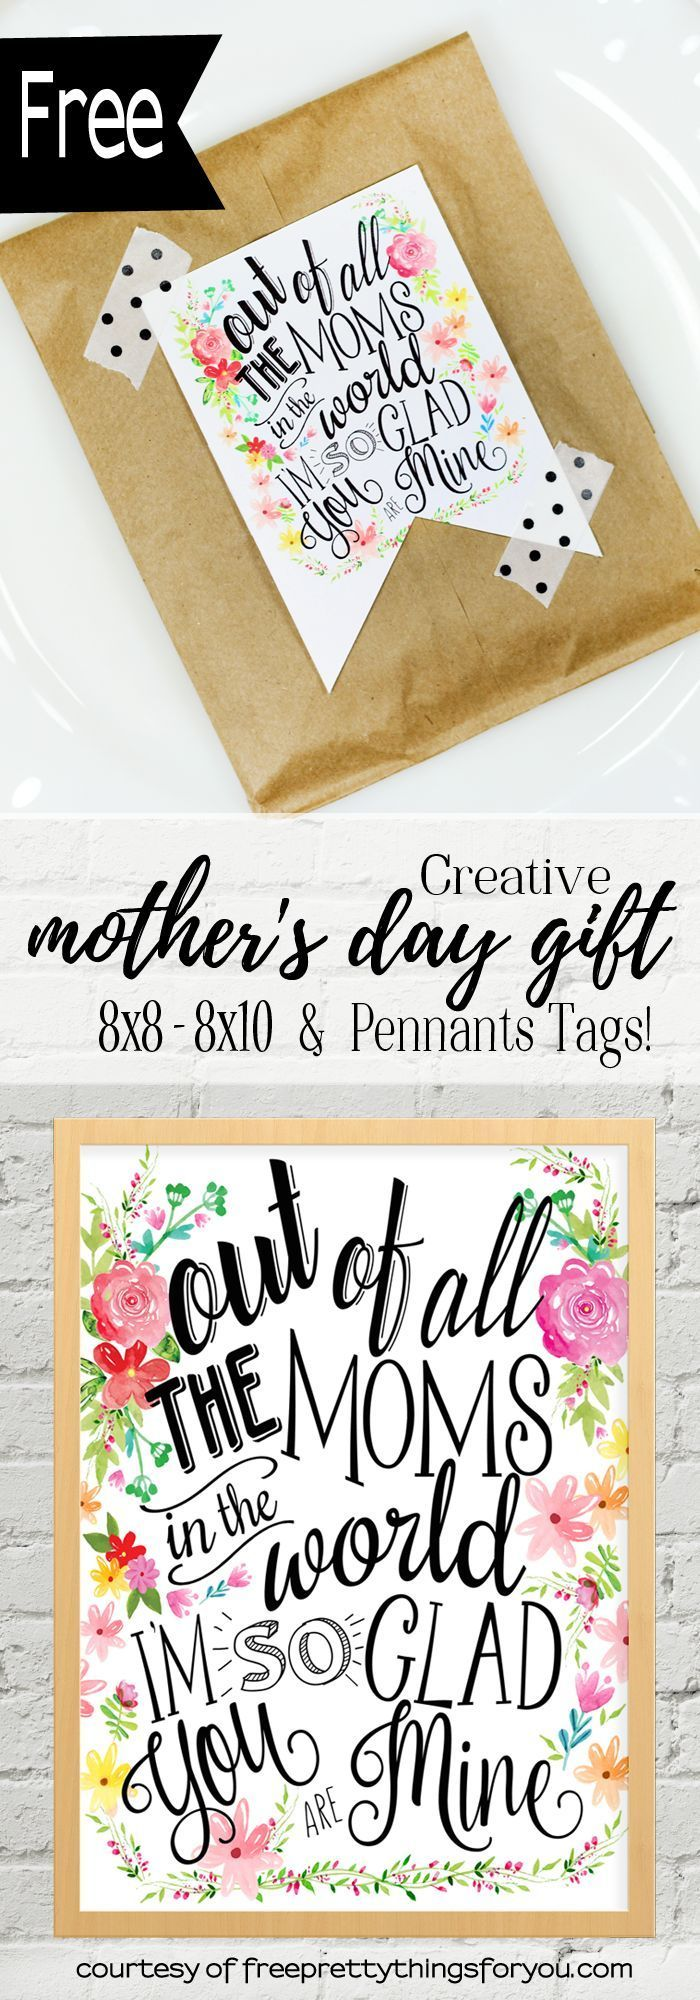 best 25 mother day gifts ideas on pinterest diy mother gifts diy mother 39 s day decorations. Black Bedroom Furniture Sets. Home Design Ideas